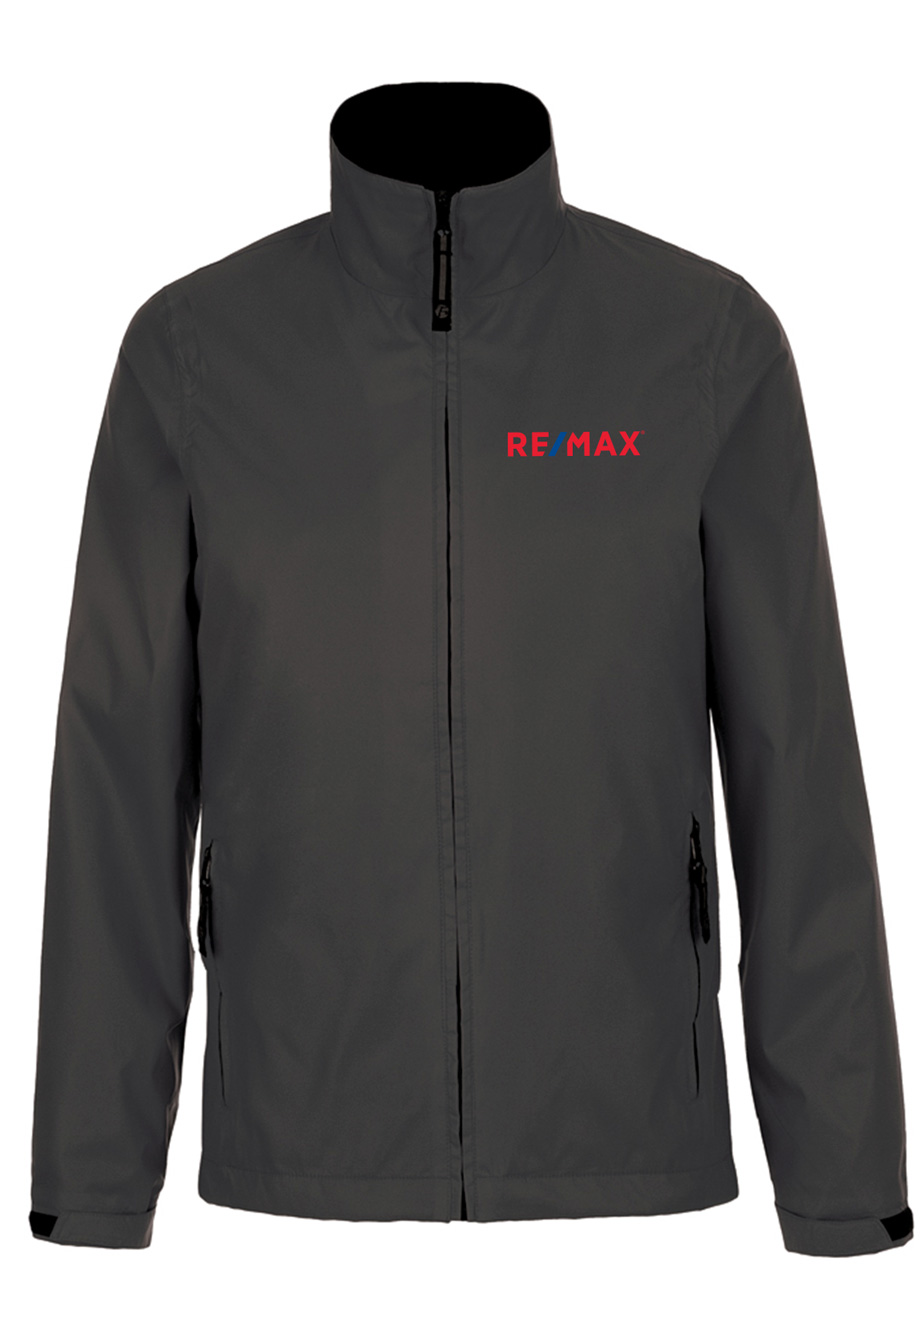 Men's Lightweight Performance Spring Jacket